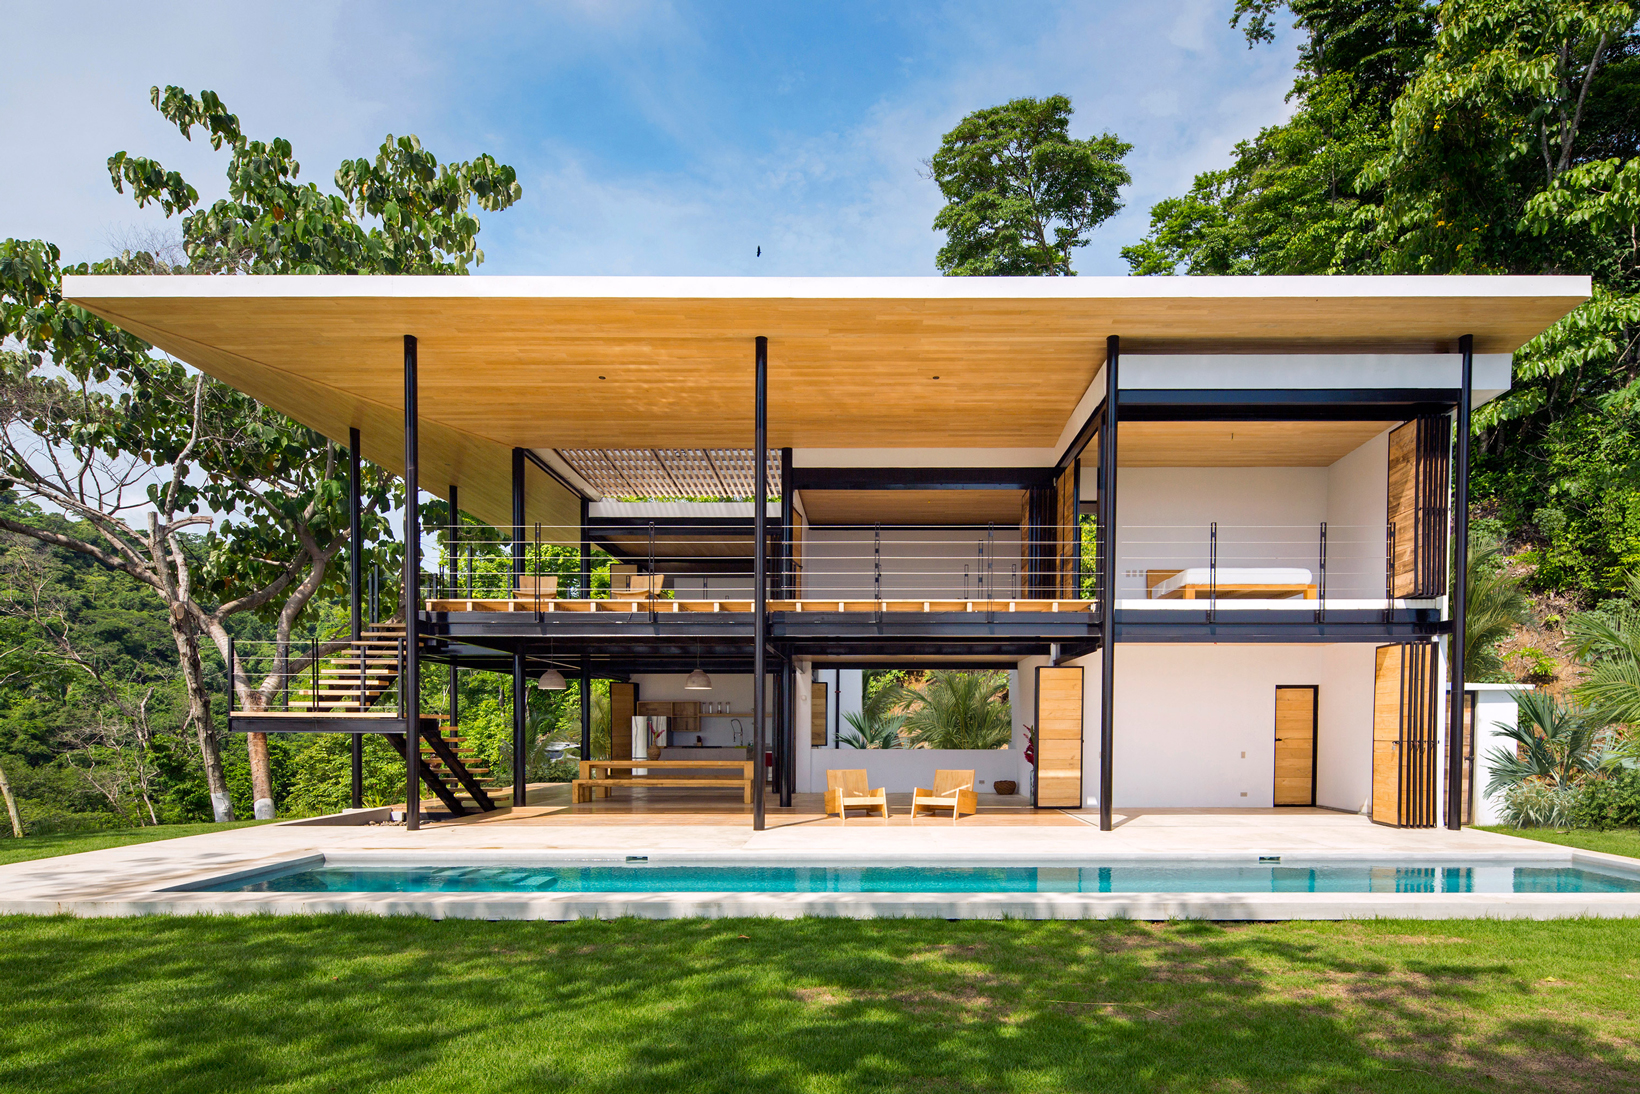 Find Your Dreamy Escape at the Ocean Eye House in Costa Rica